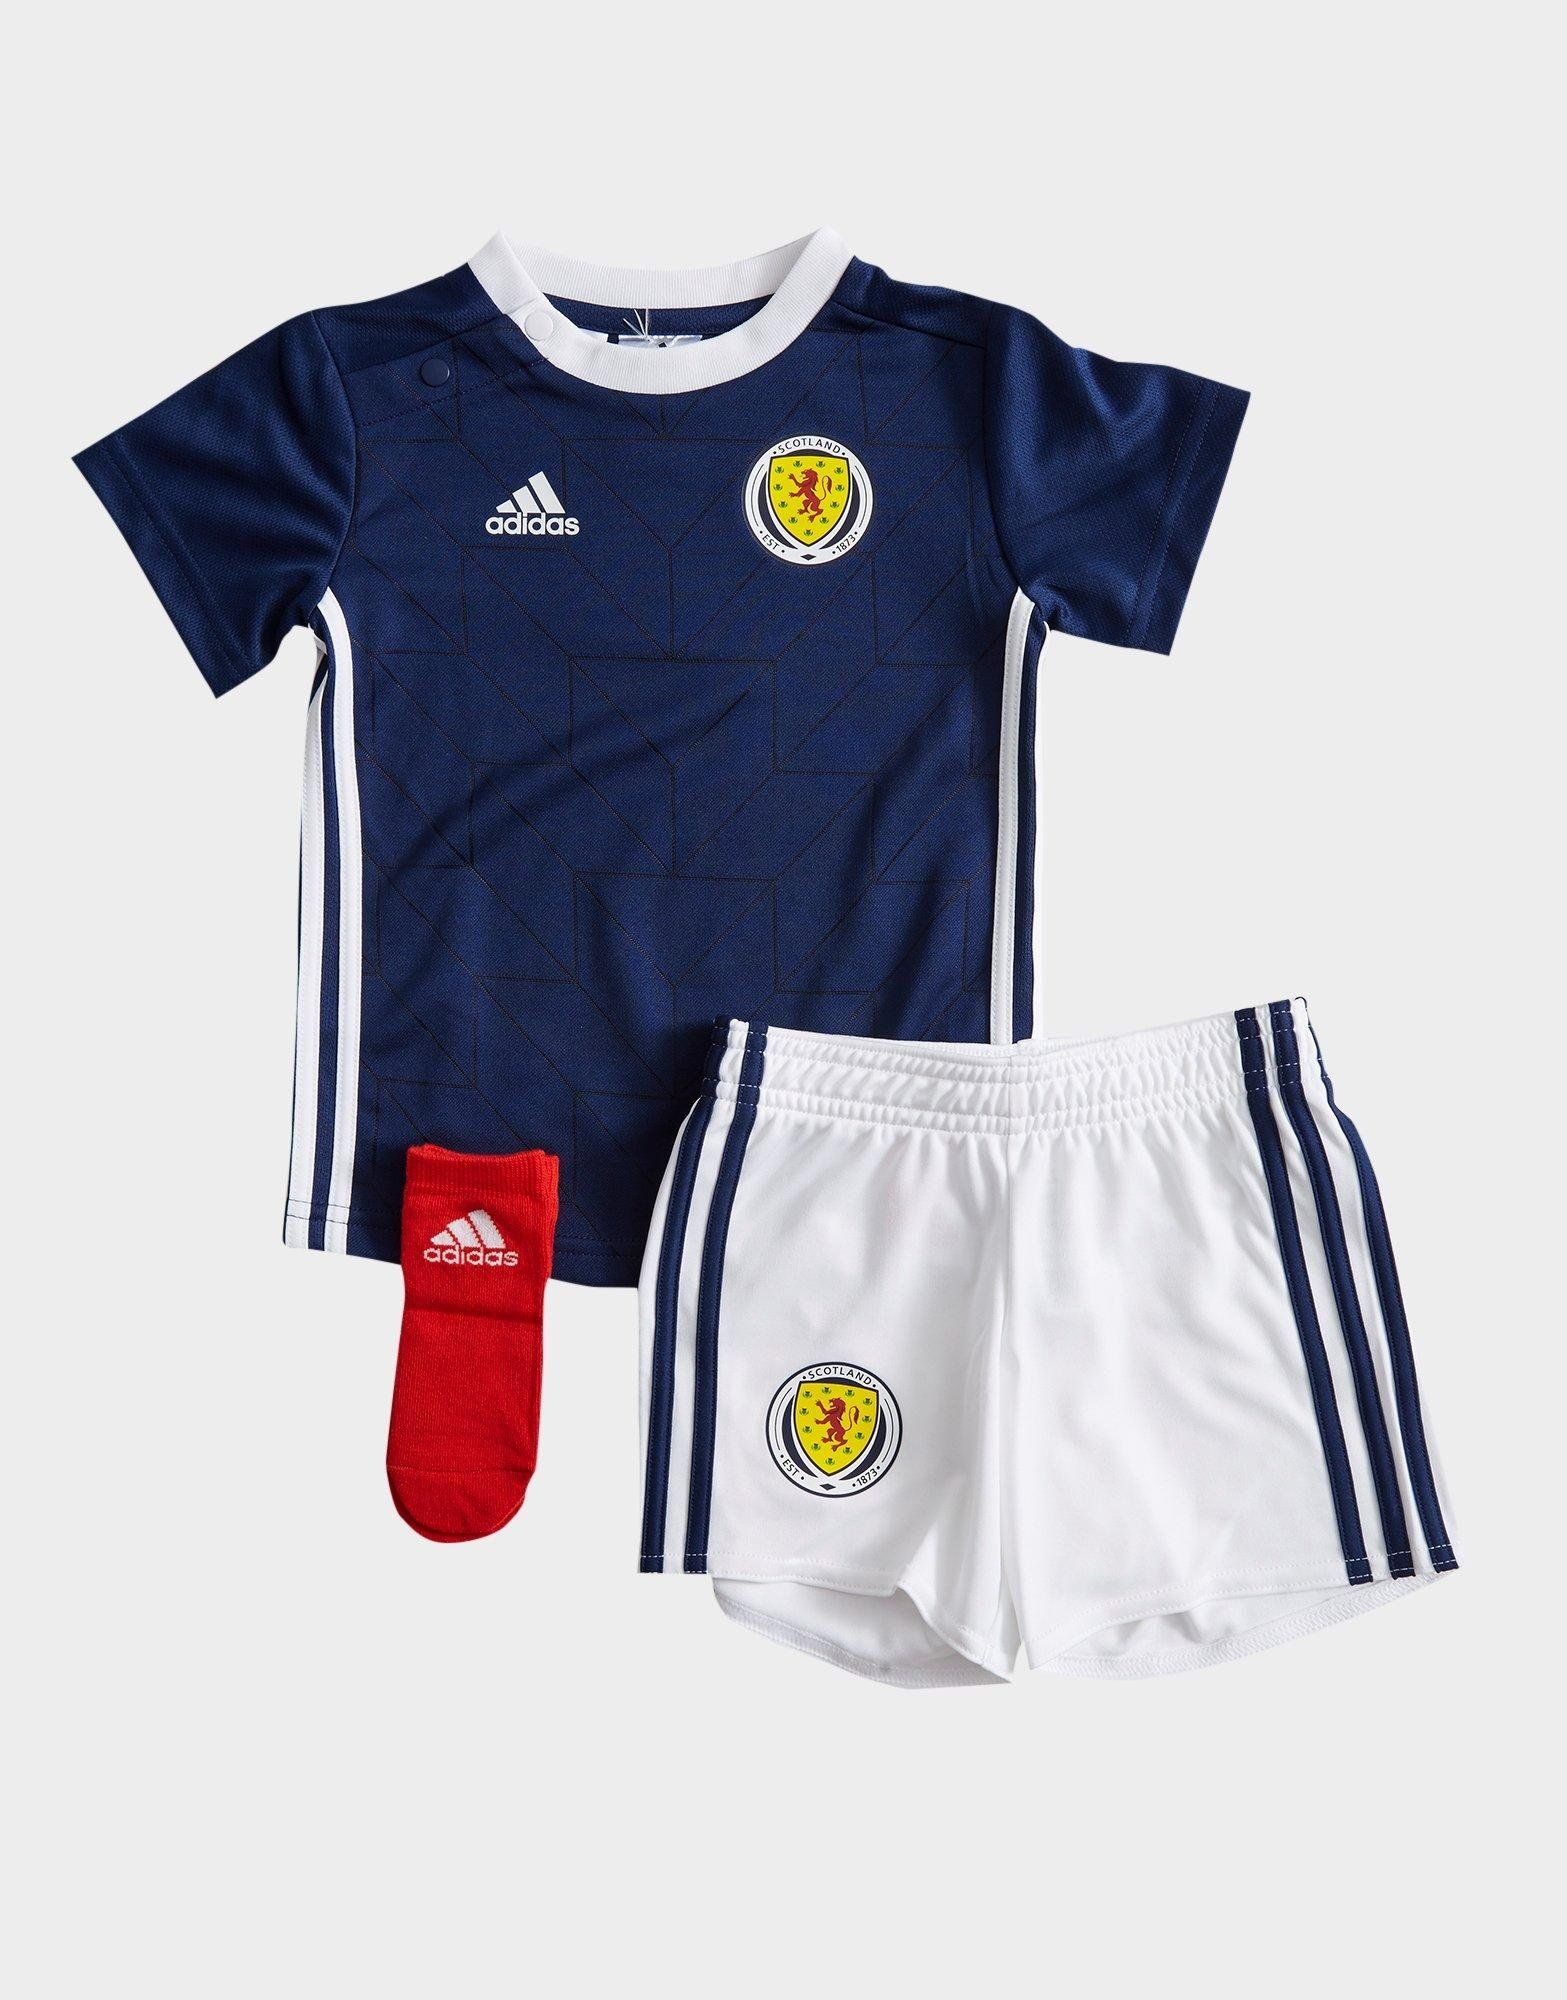 6f1509304 adidas Scotland 2018 19 Home Kit Infant